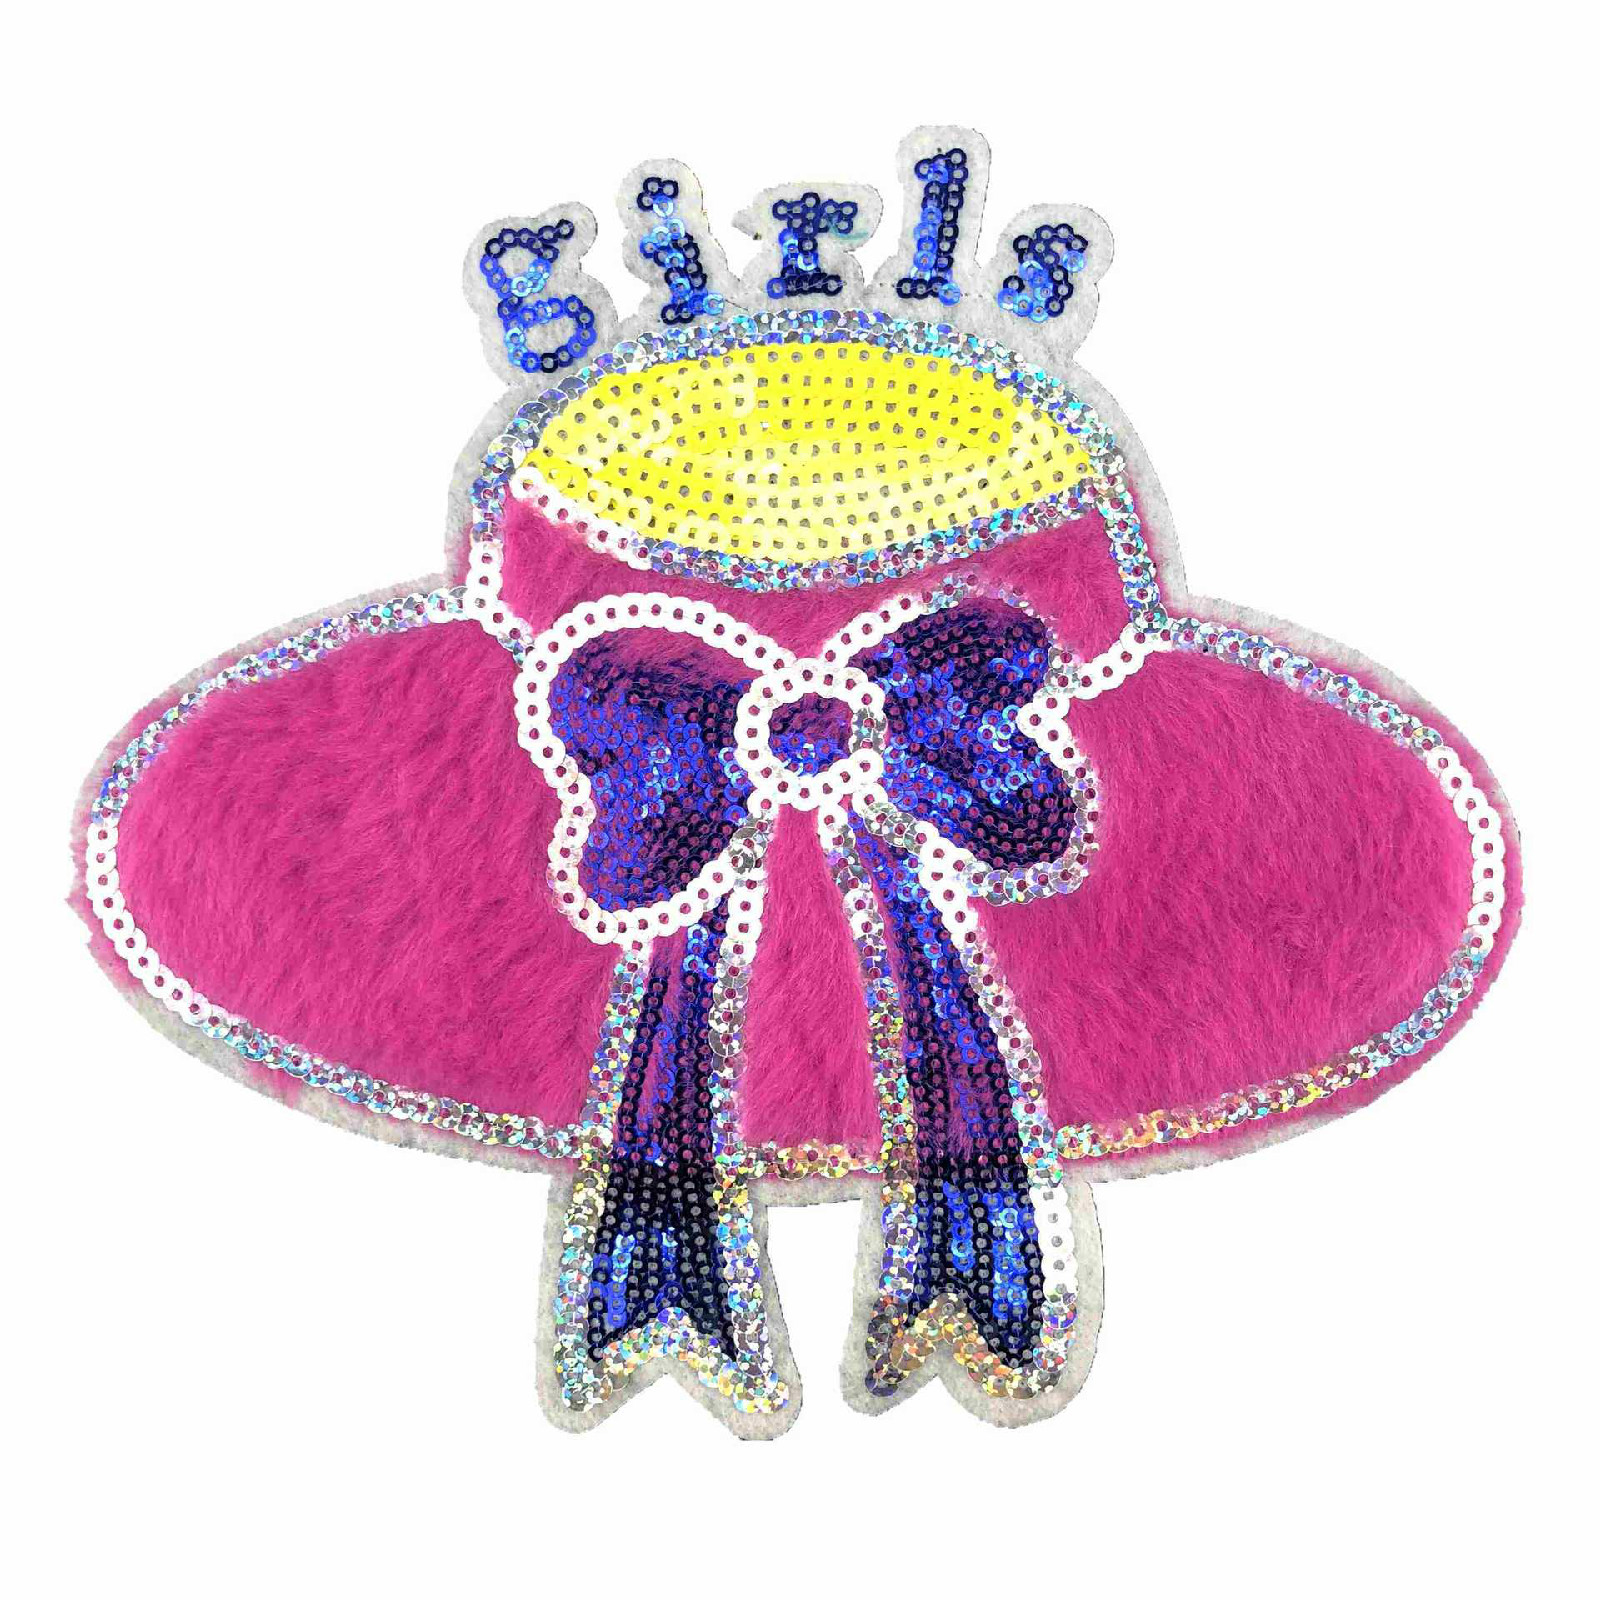 New Earth Butterfly Sequin Cloth Paste Towel Embroidery Children's Bags Patch Clothing Accessories Embroidery Wholesale